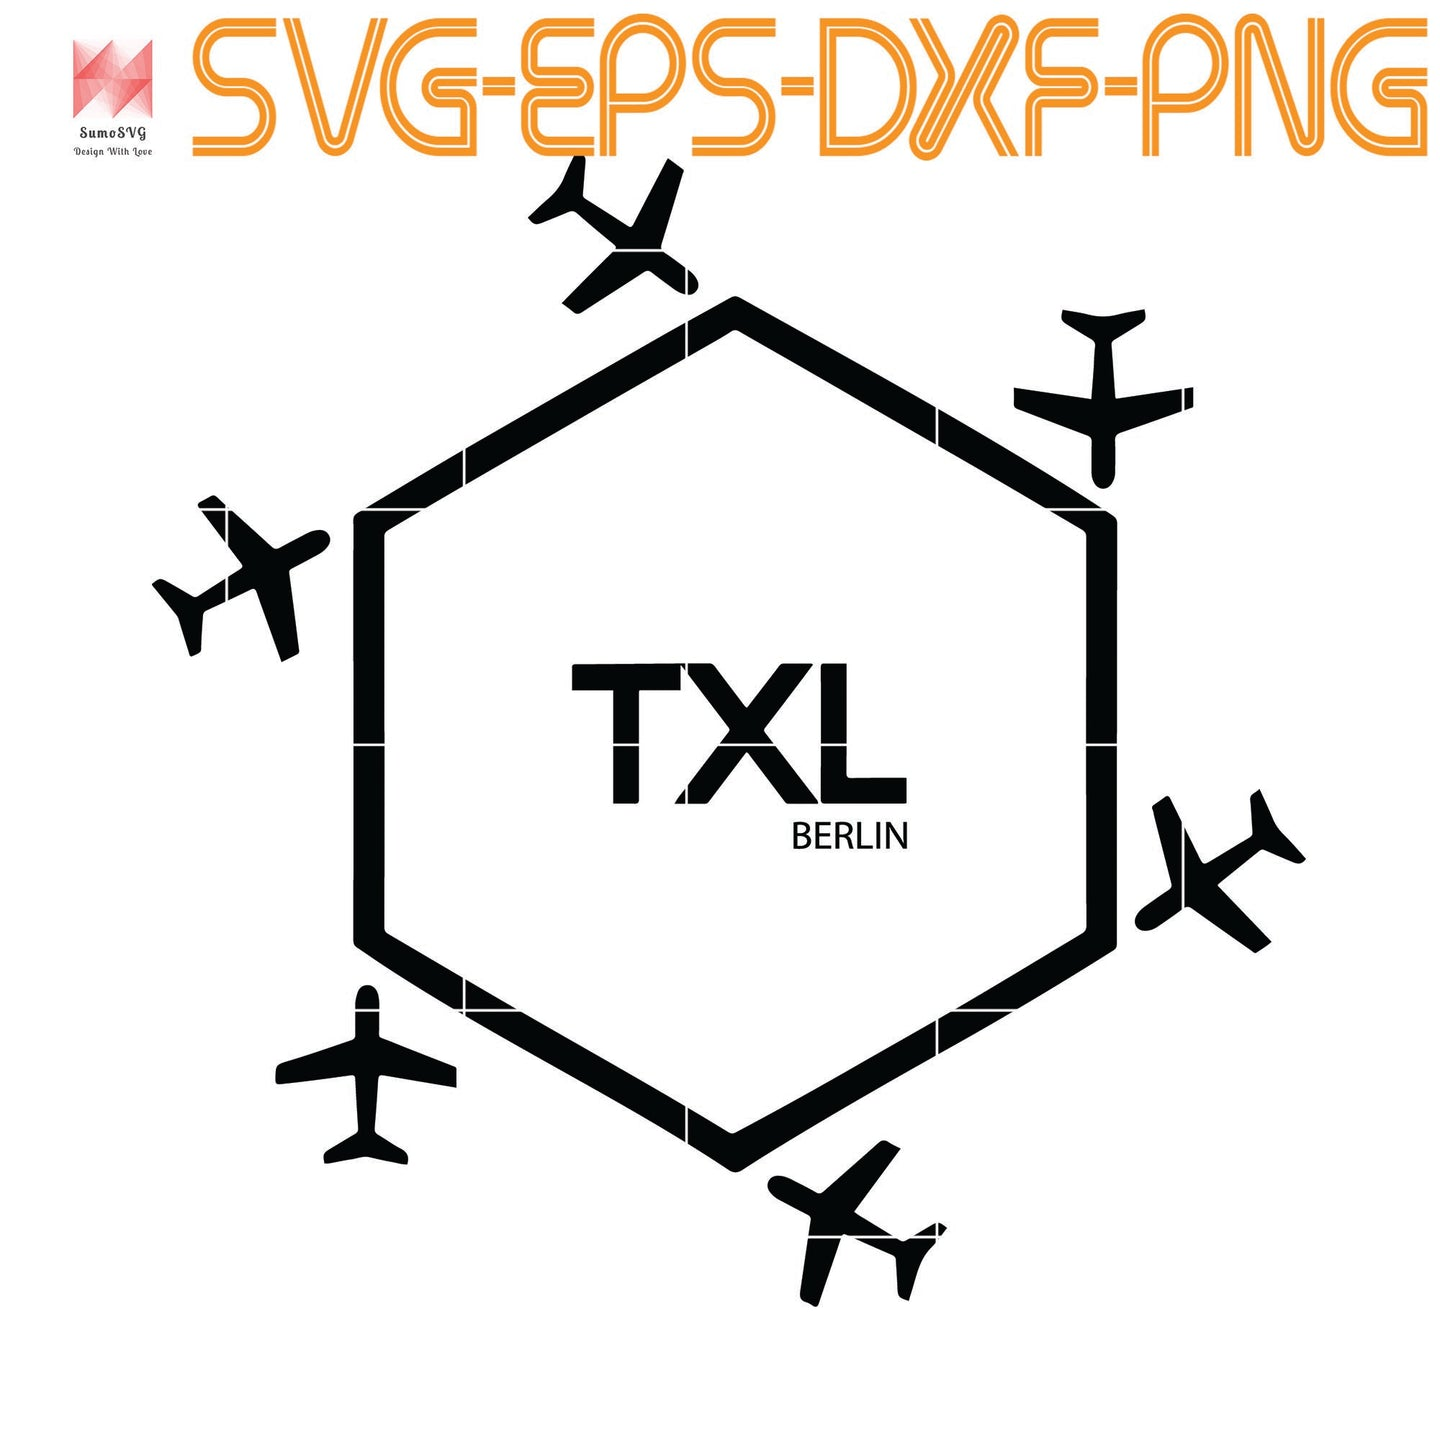 Berlin Airport Tegel TXL, Quotes, Funny Quotes, Cameo, Cricut, Silhouette, SVG, PNG, Eps, DXF, Digital Download